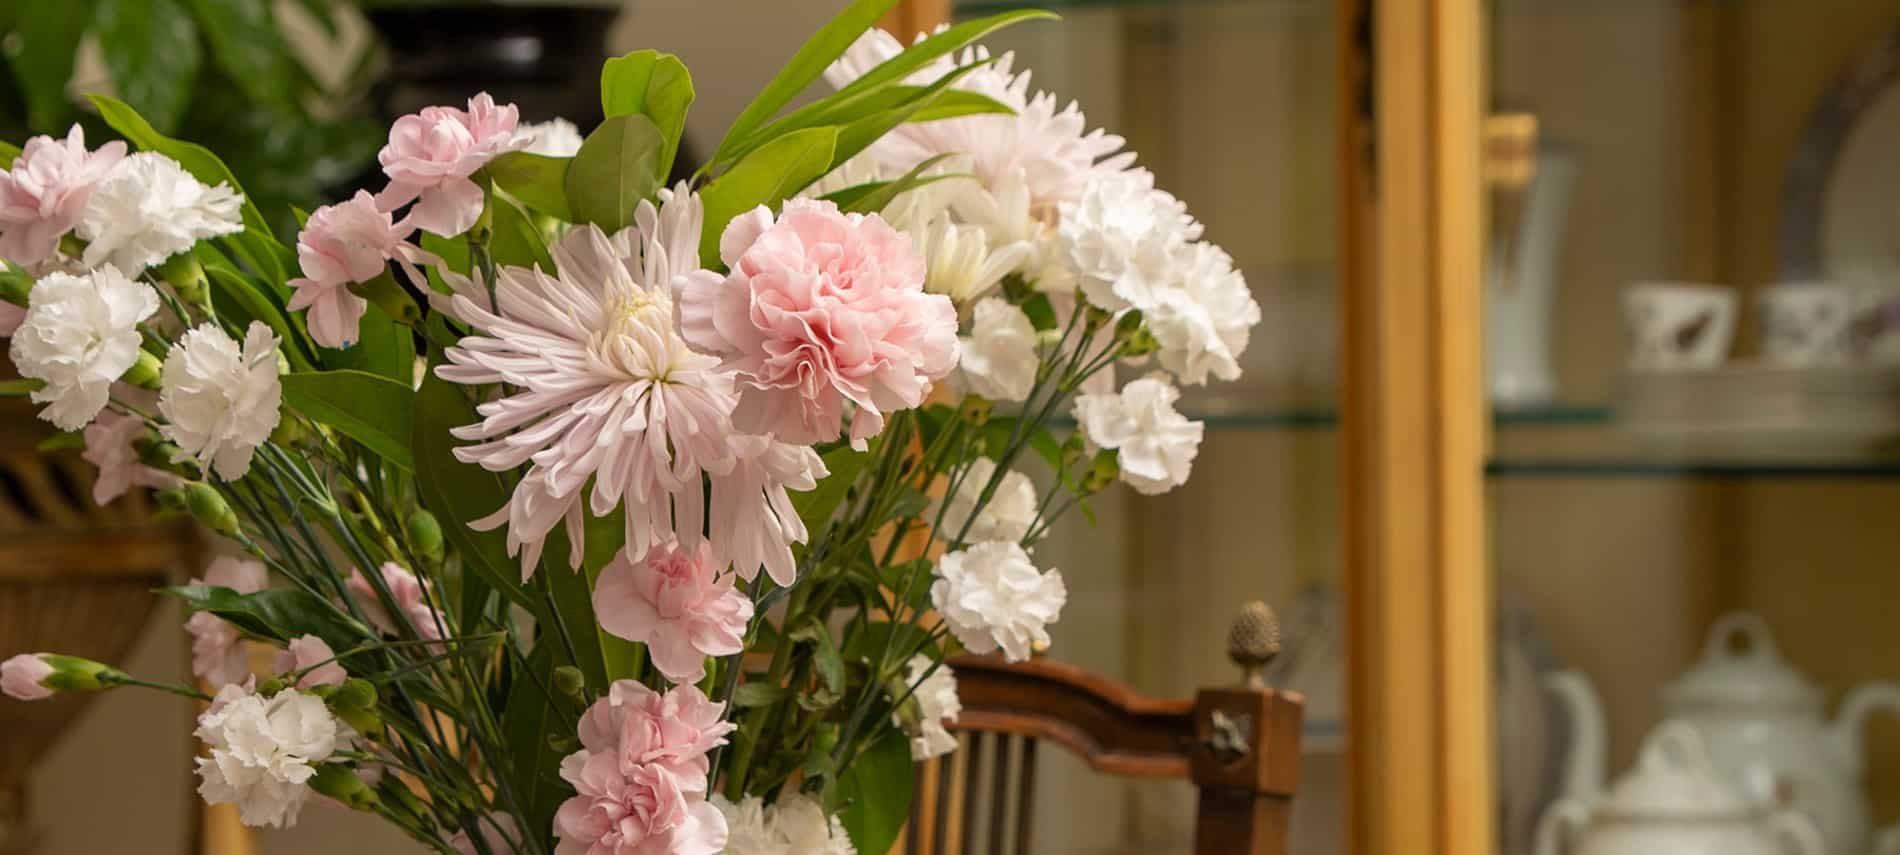 Pink and white mums and carnations in a vase in front of a china cabinet.